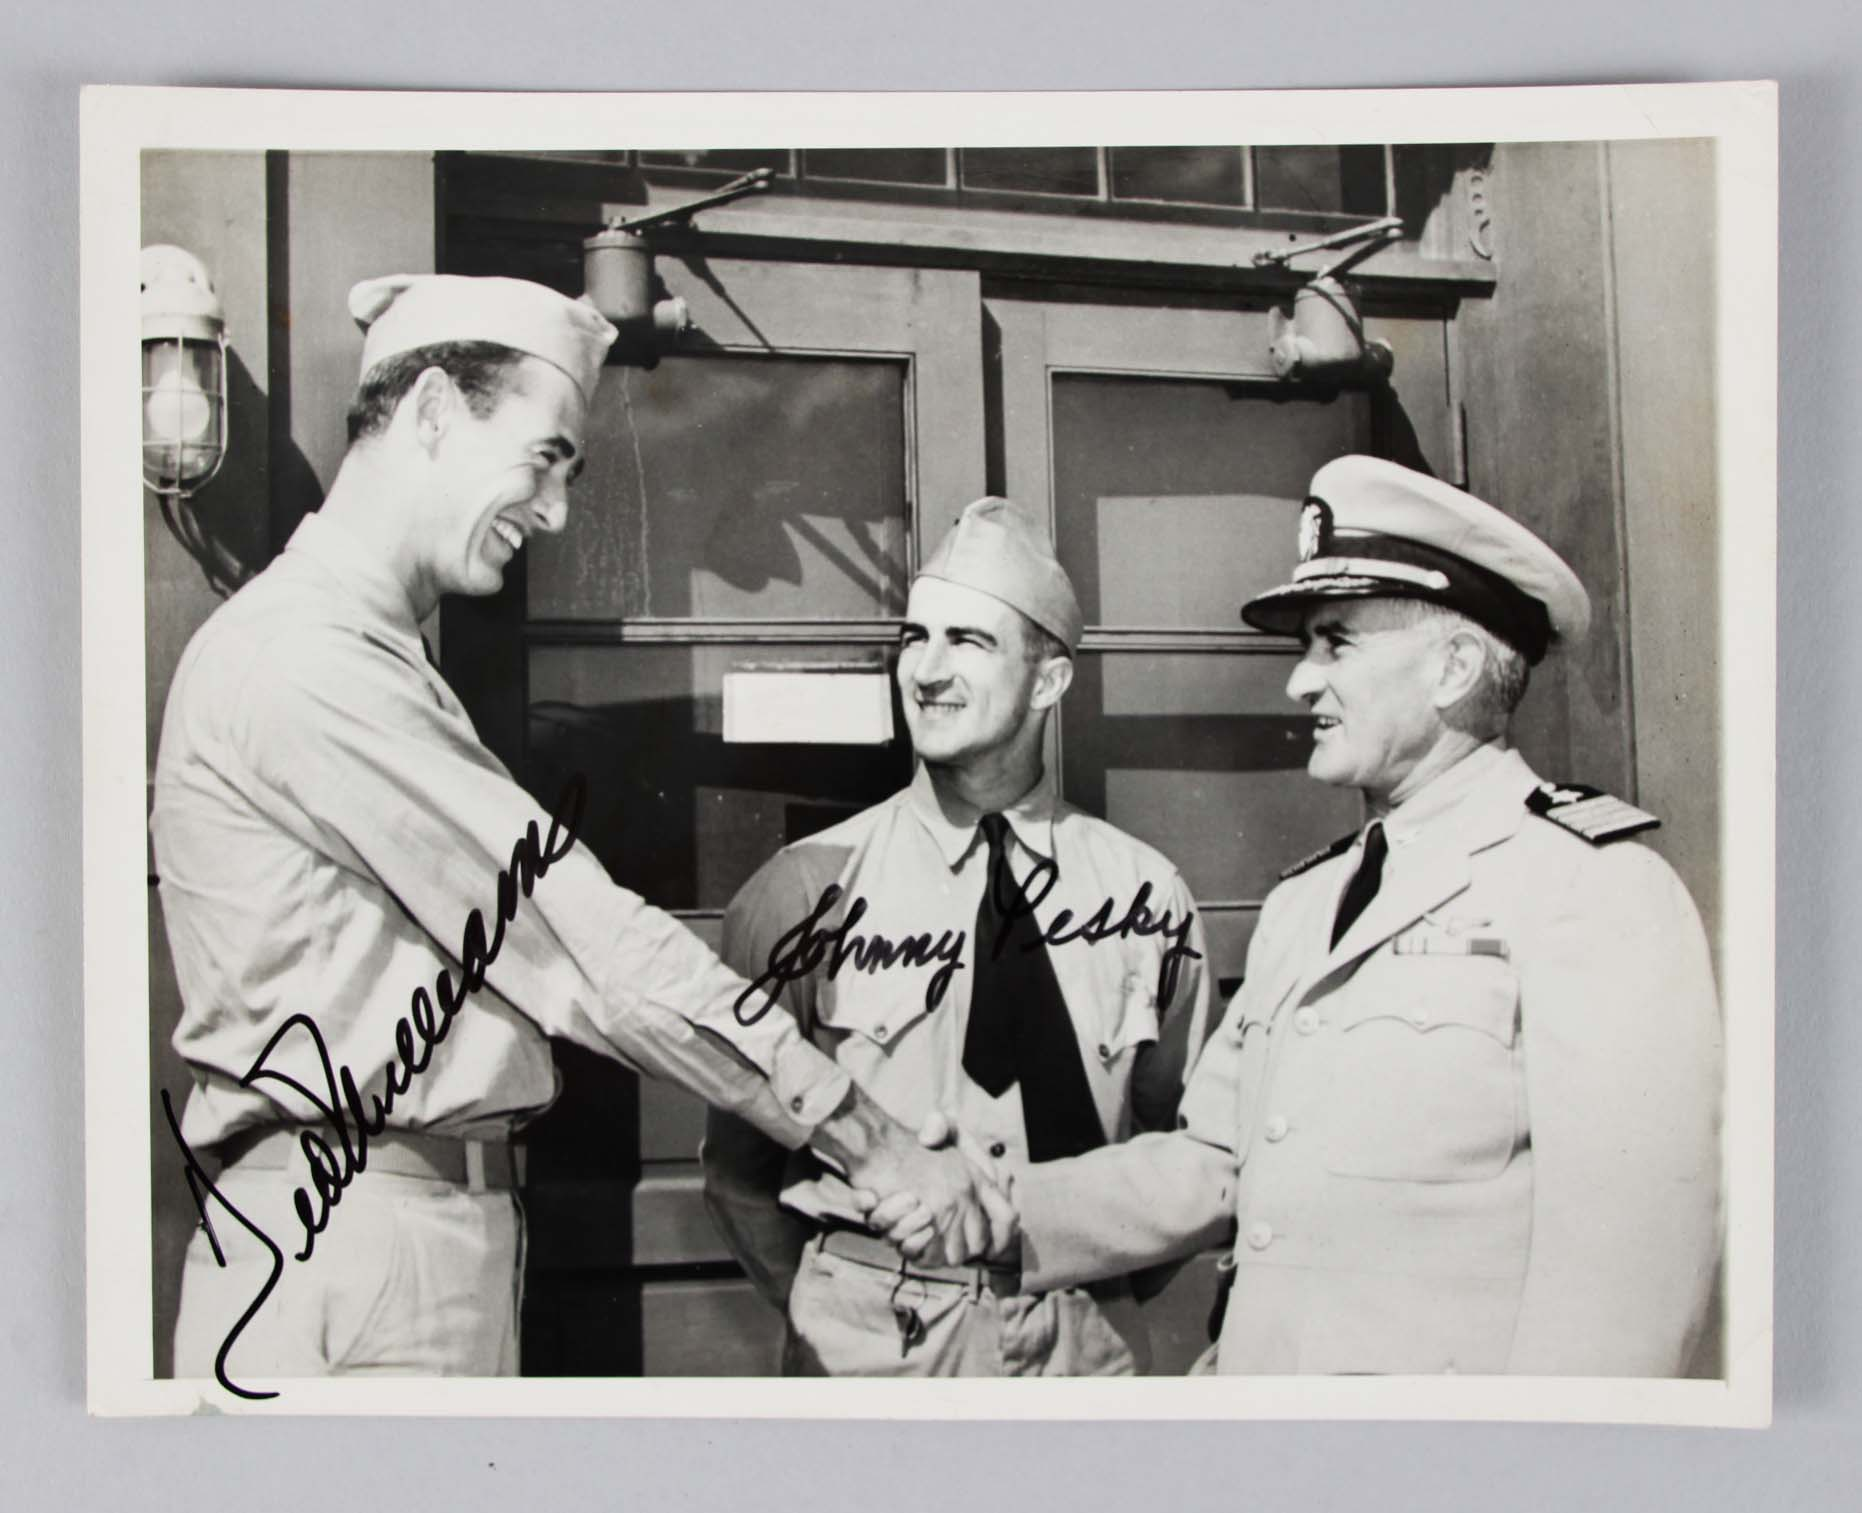 1942-43 Boston Red Sox - Ted Williams & Johnny Pesky Signed 7.5x9 Military Wire Photo - JSA